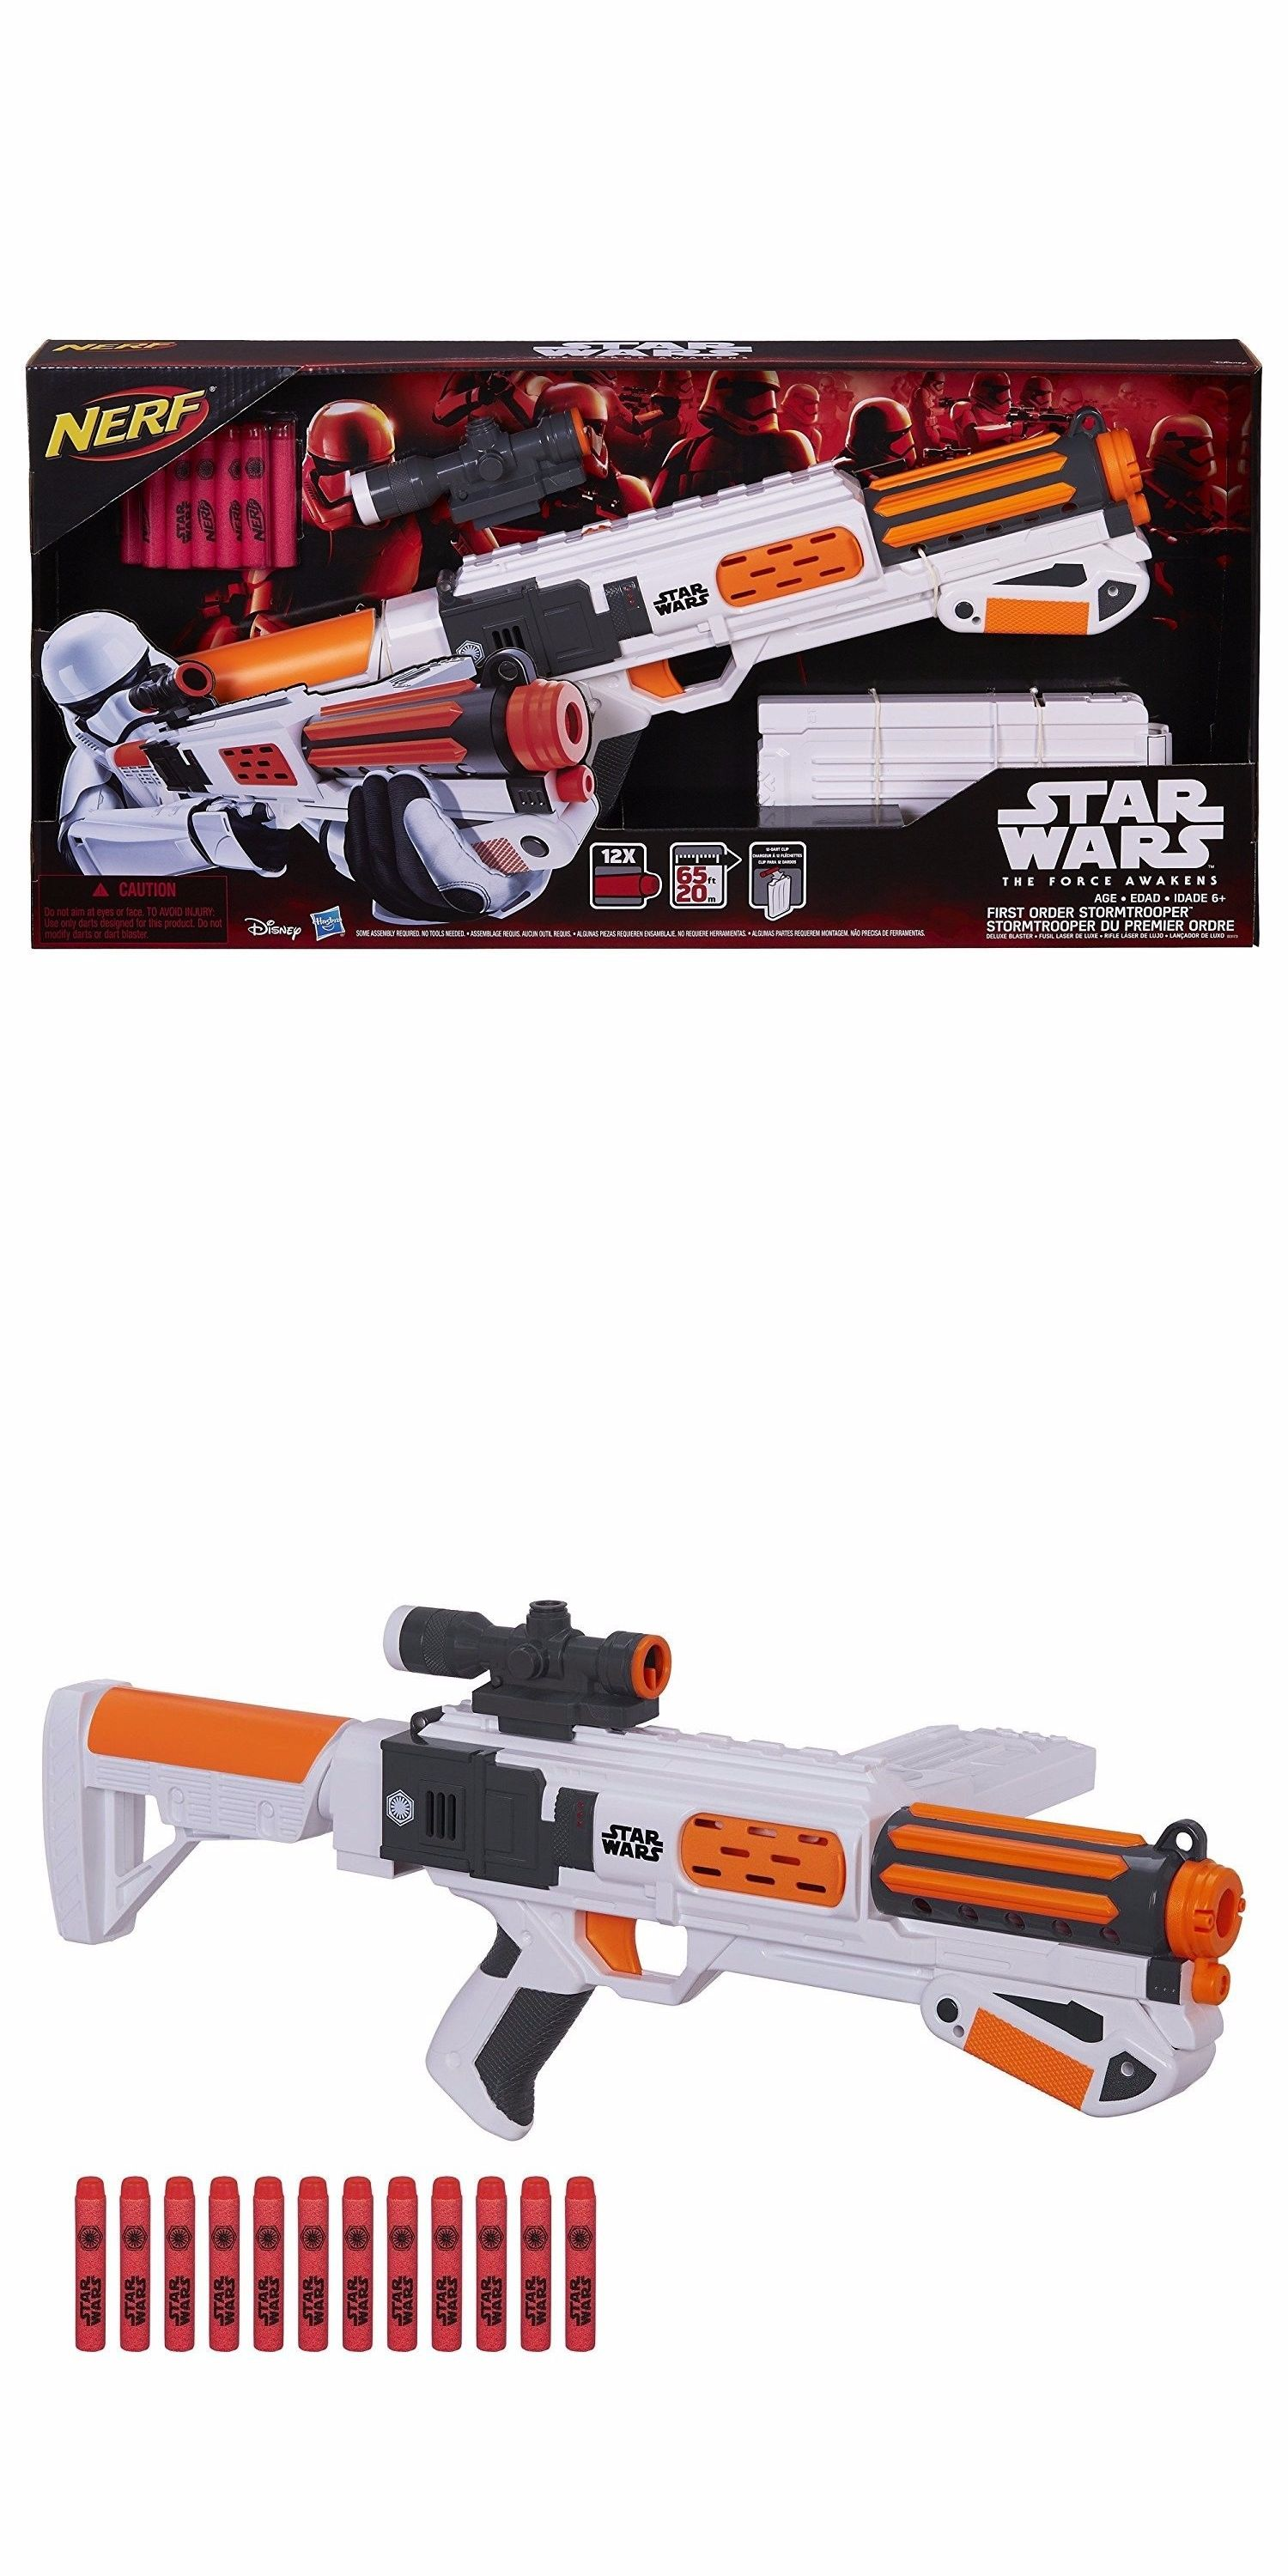 Dart Guns and Soft Darts Star Wars Nerf Episode Vii First Order Stormtrooper Deluxe